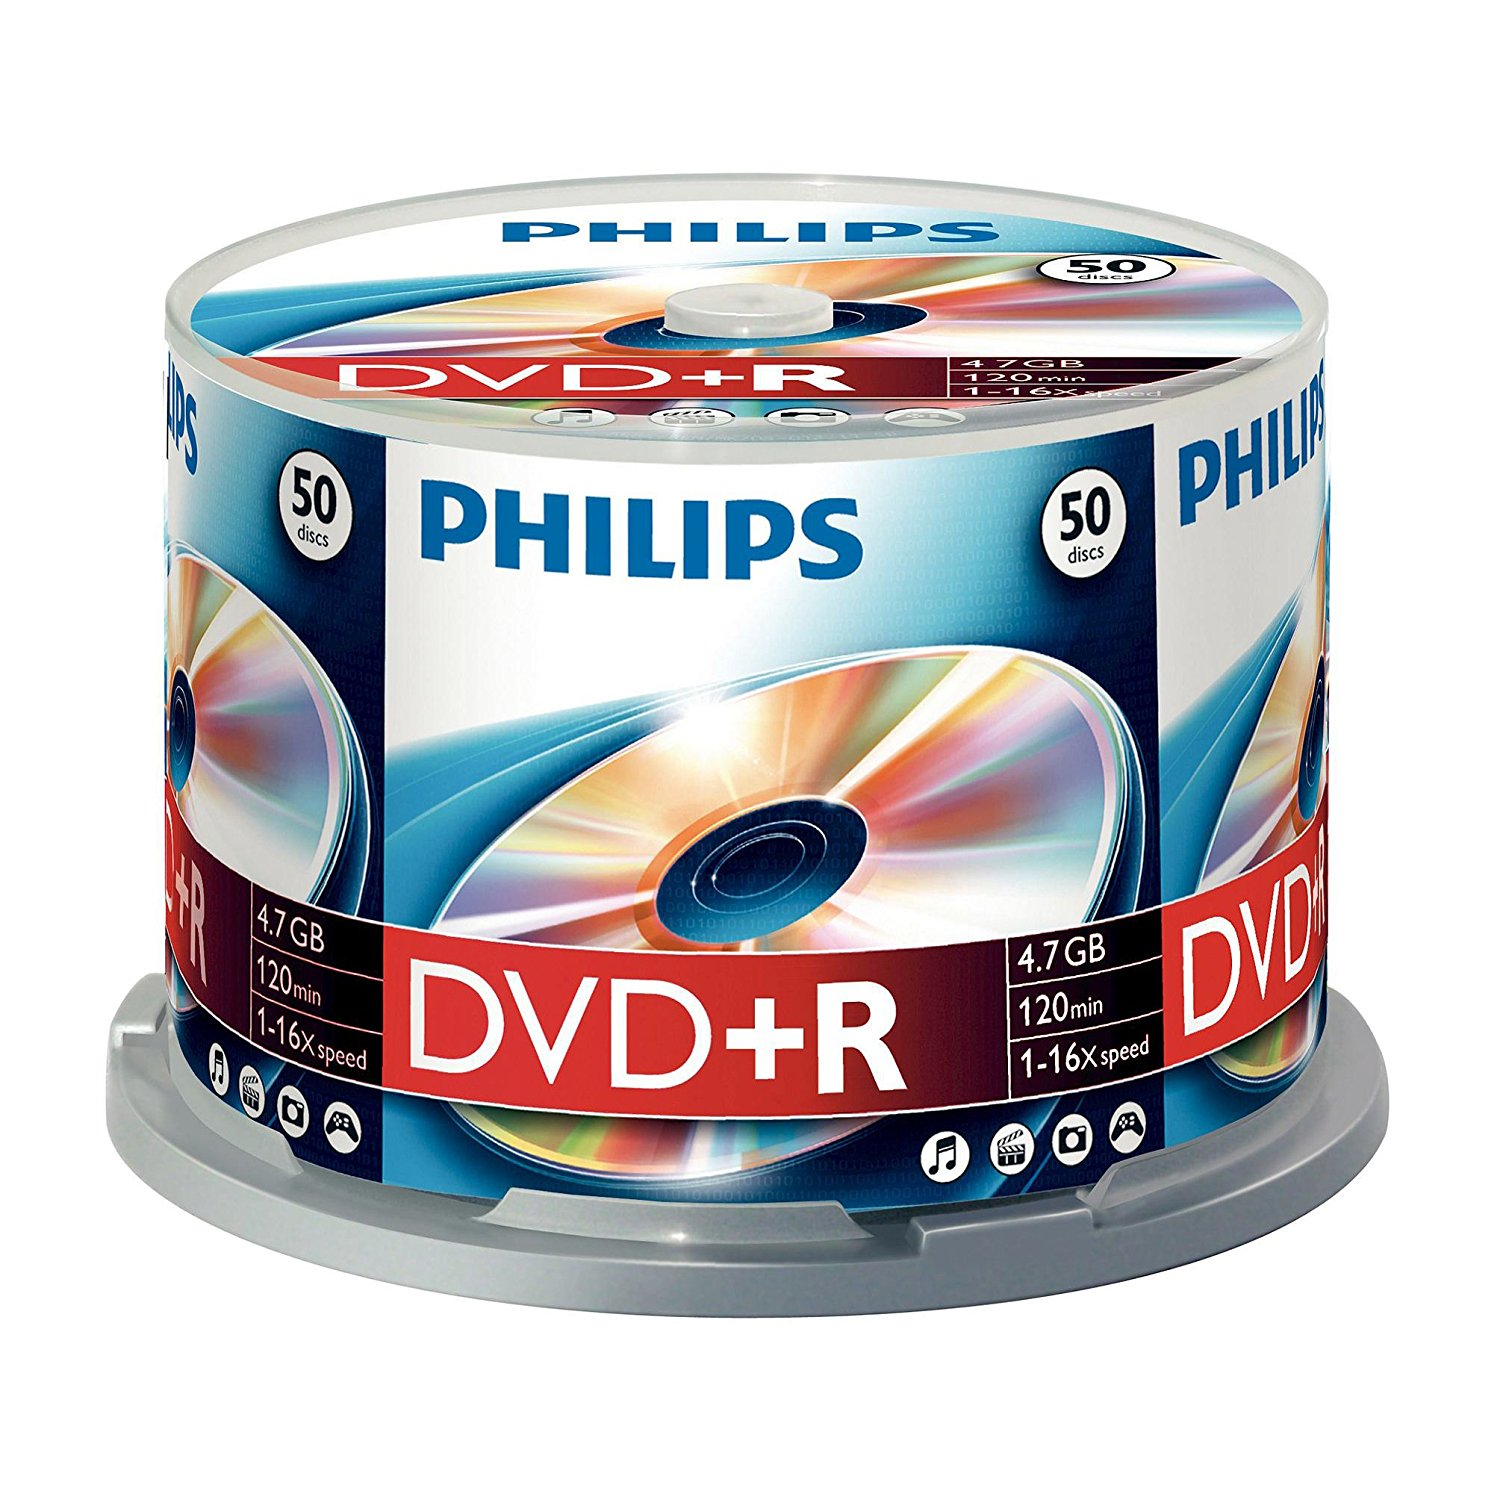 Philips DVD+R (16x) 50 spindle